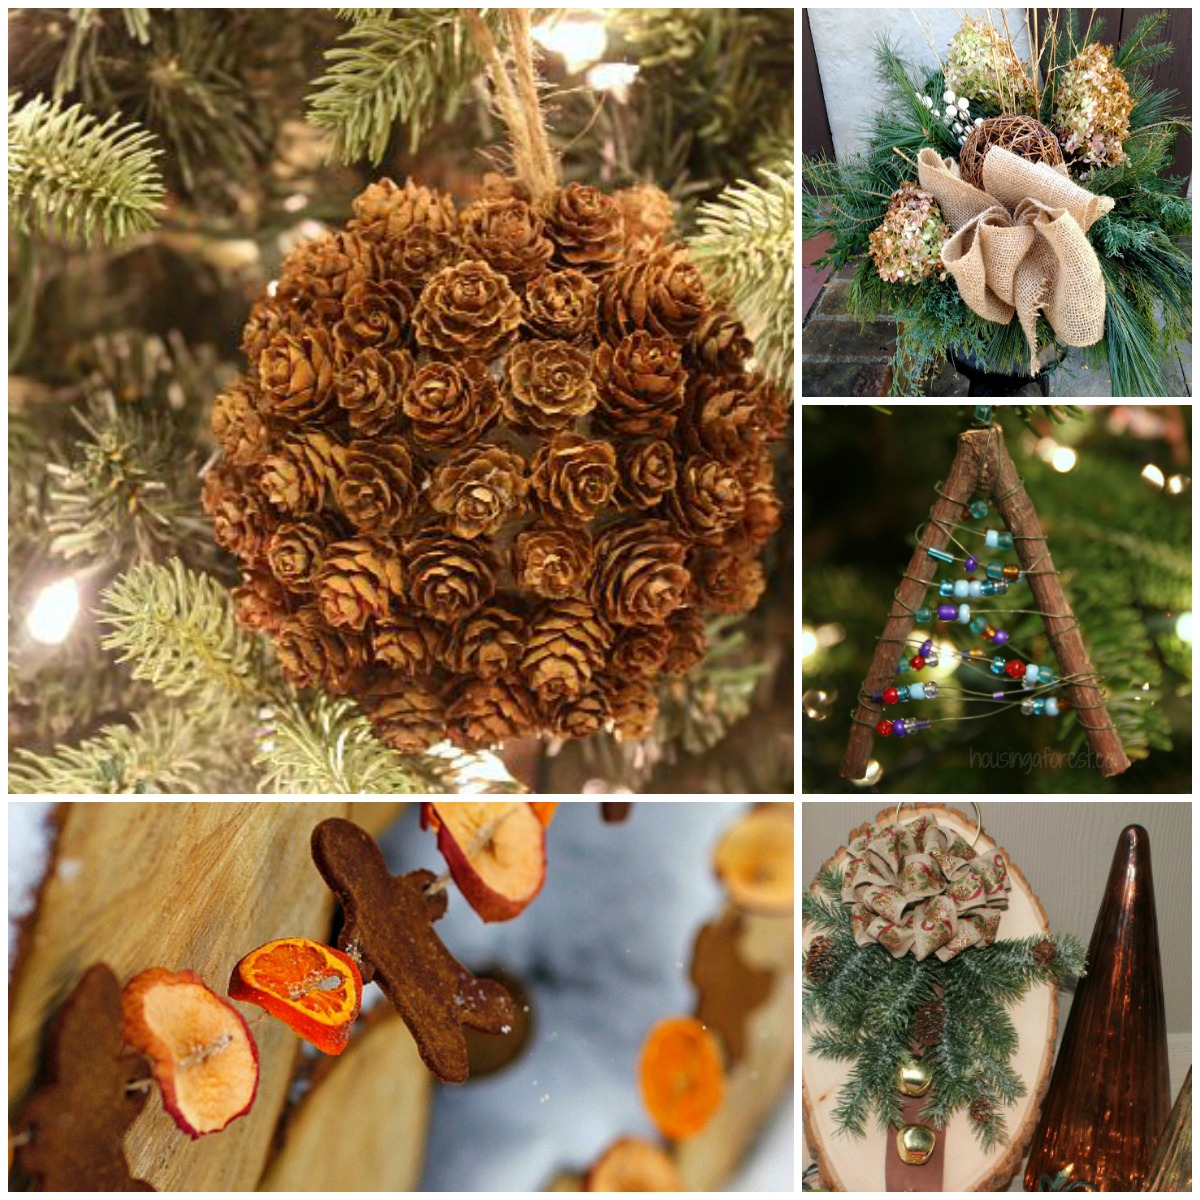 wait free christmas decorations yes please love these ideas for free natural - Home Free Christmas